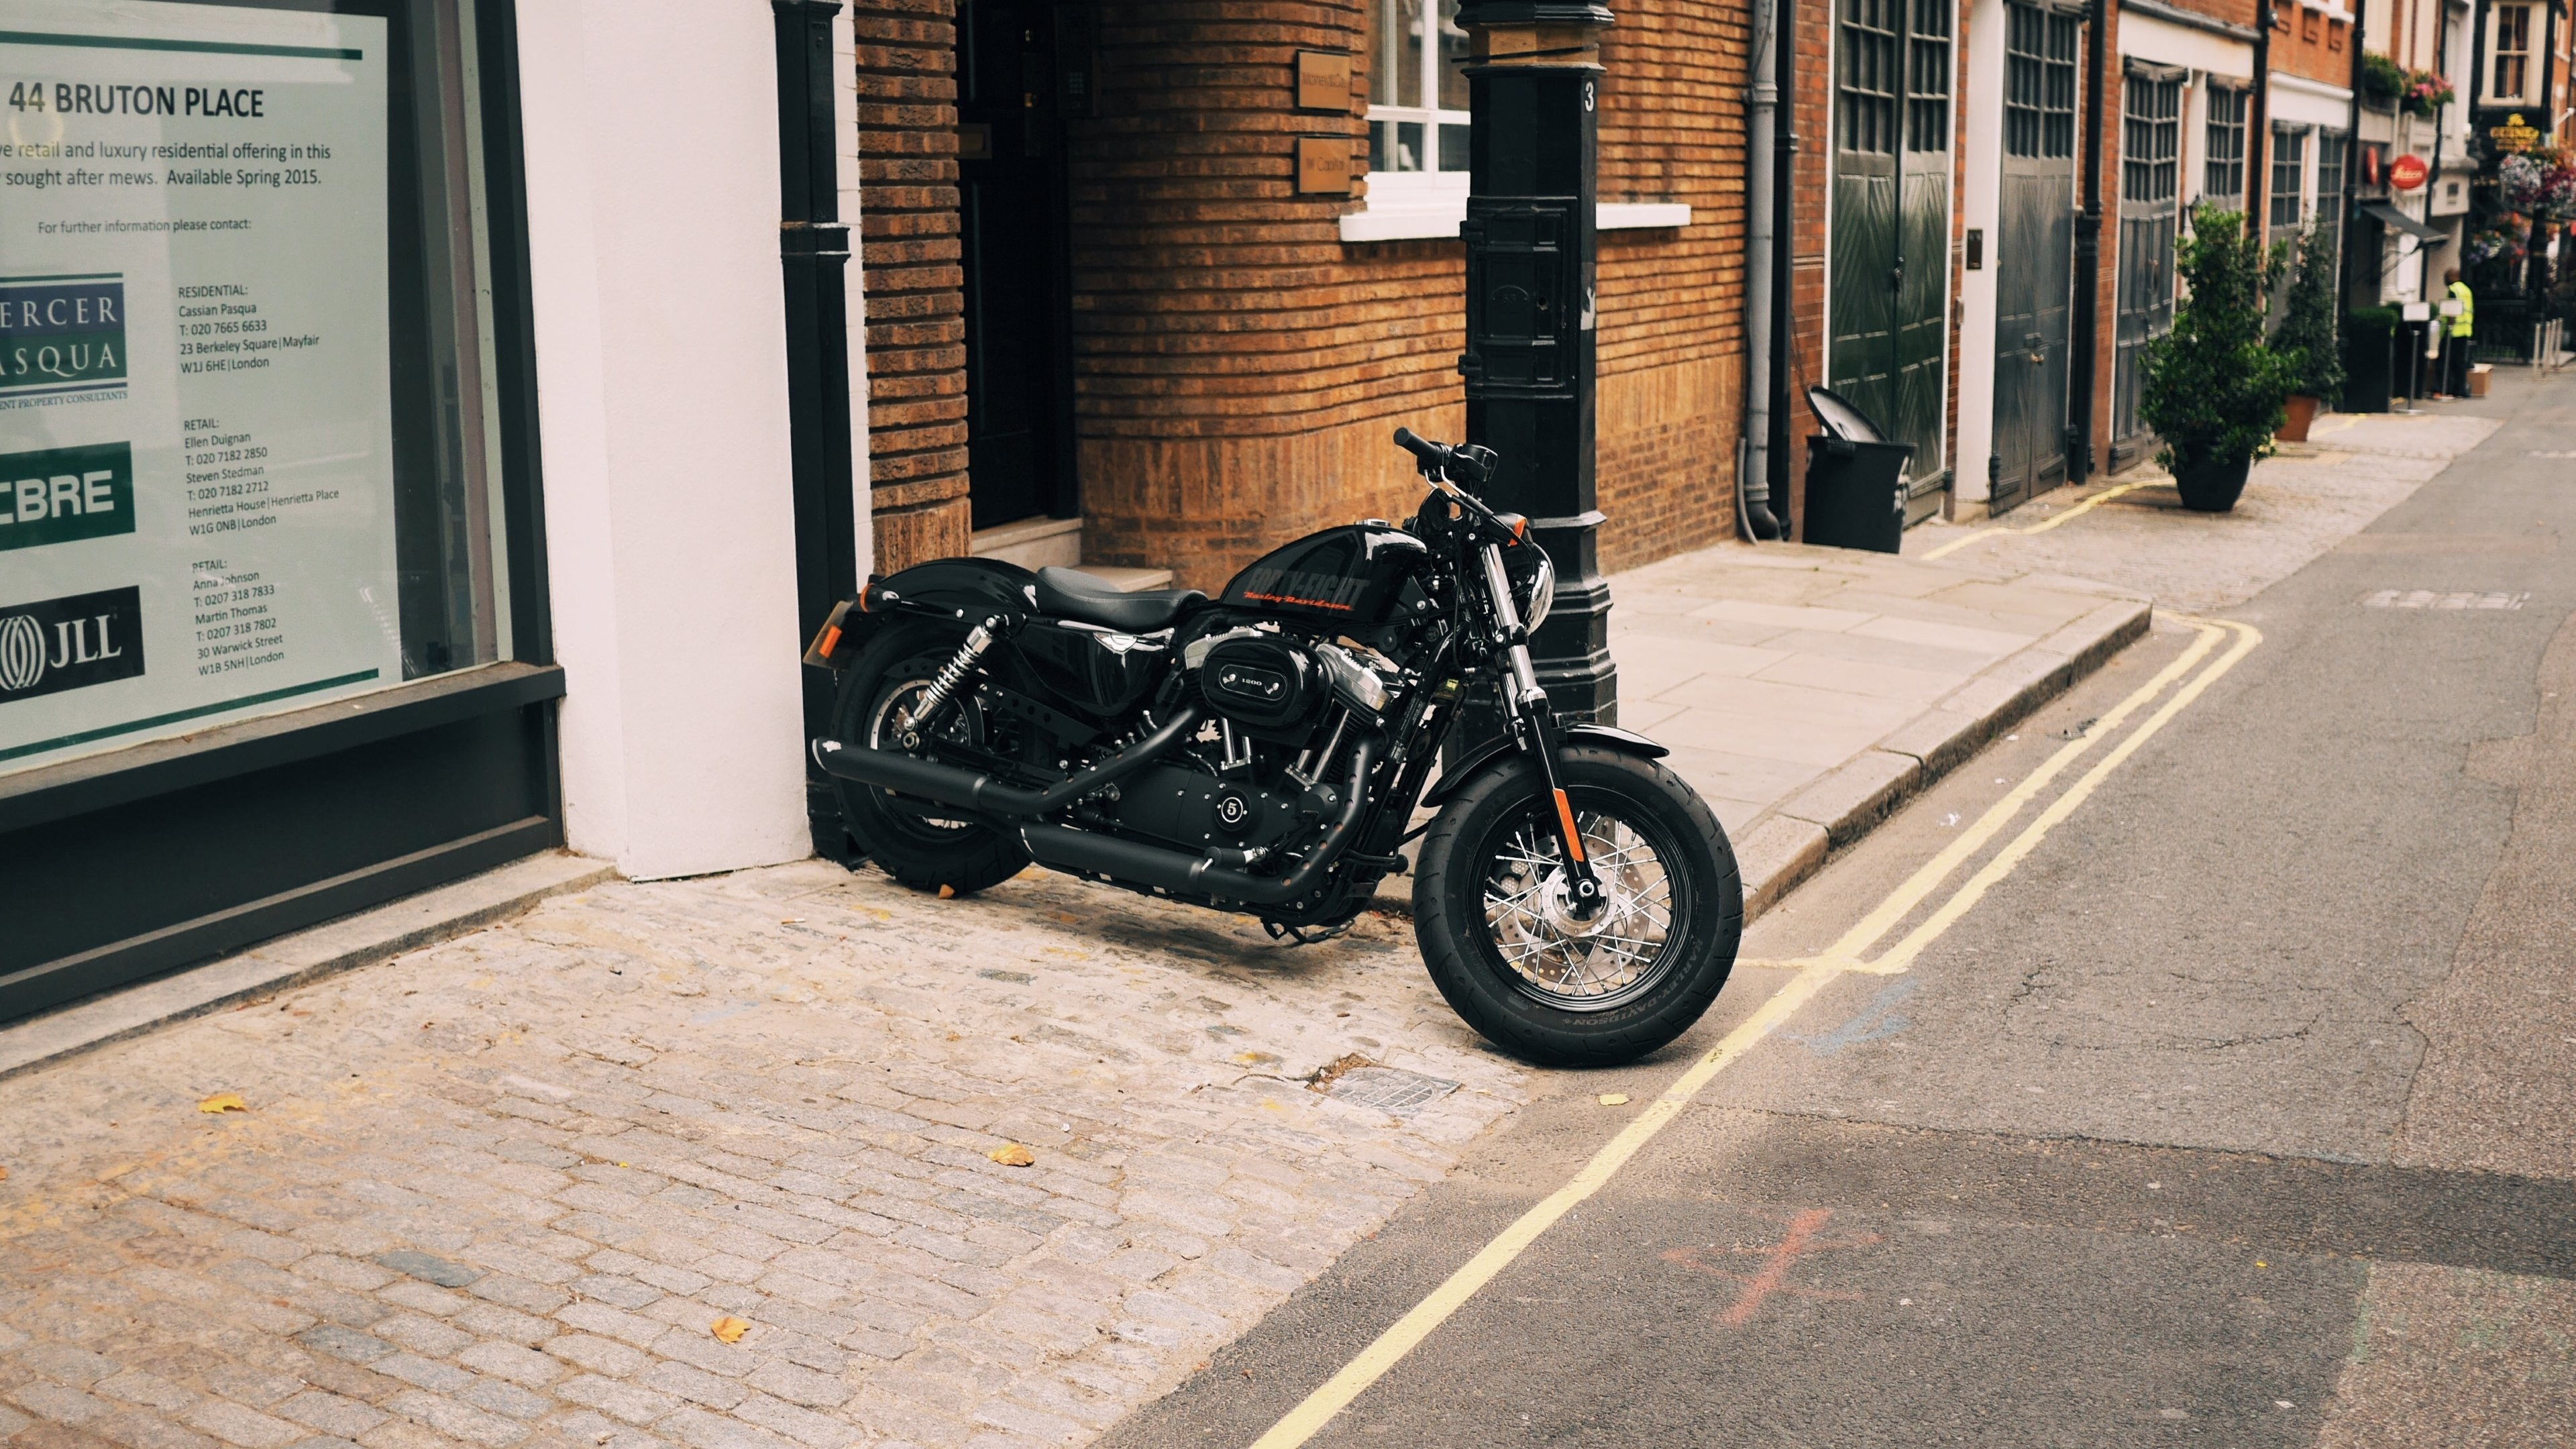 3840x2160 Description: Download Harley Davidson on London streets HD & Widescreen  Wallpaper ...